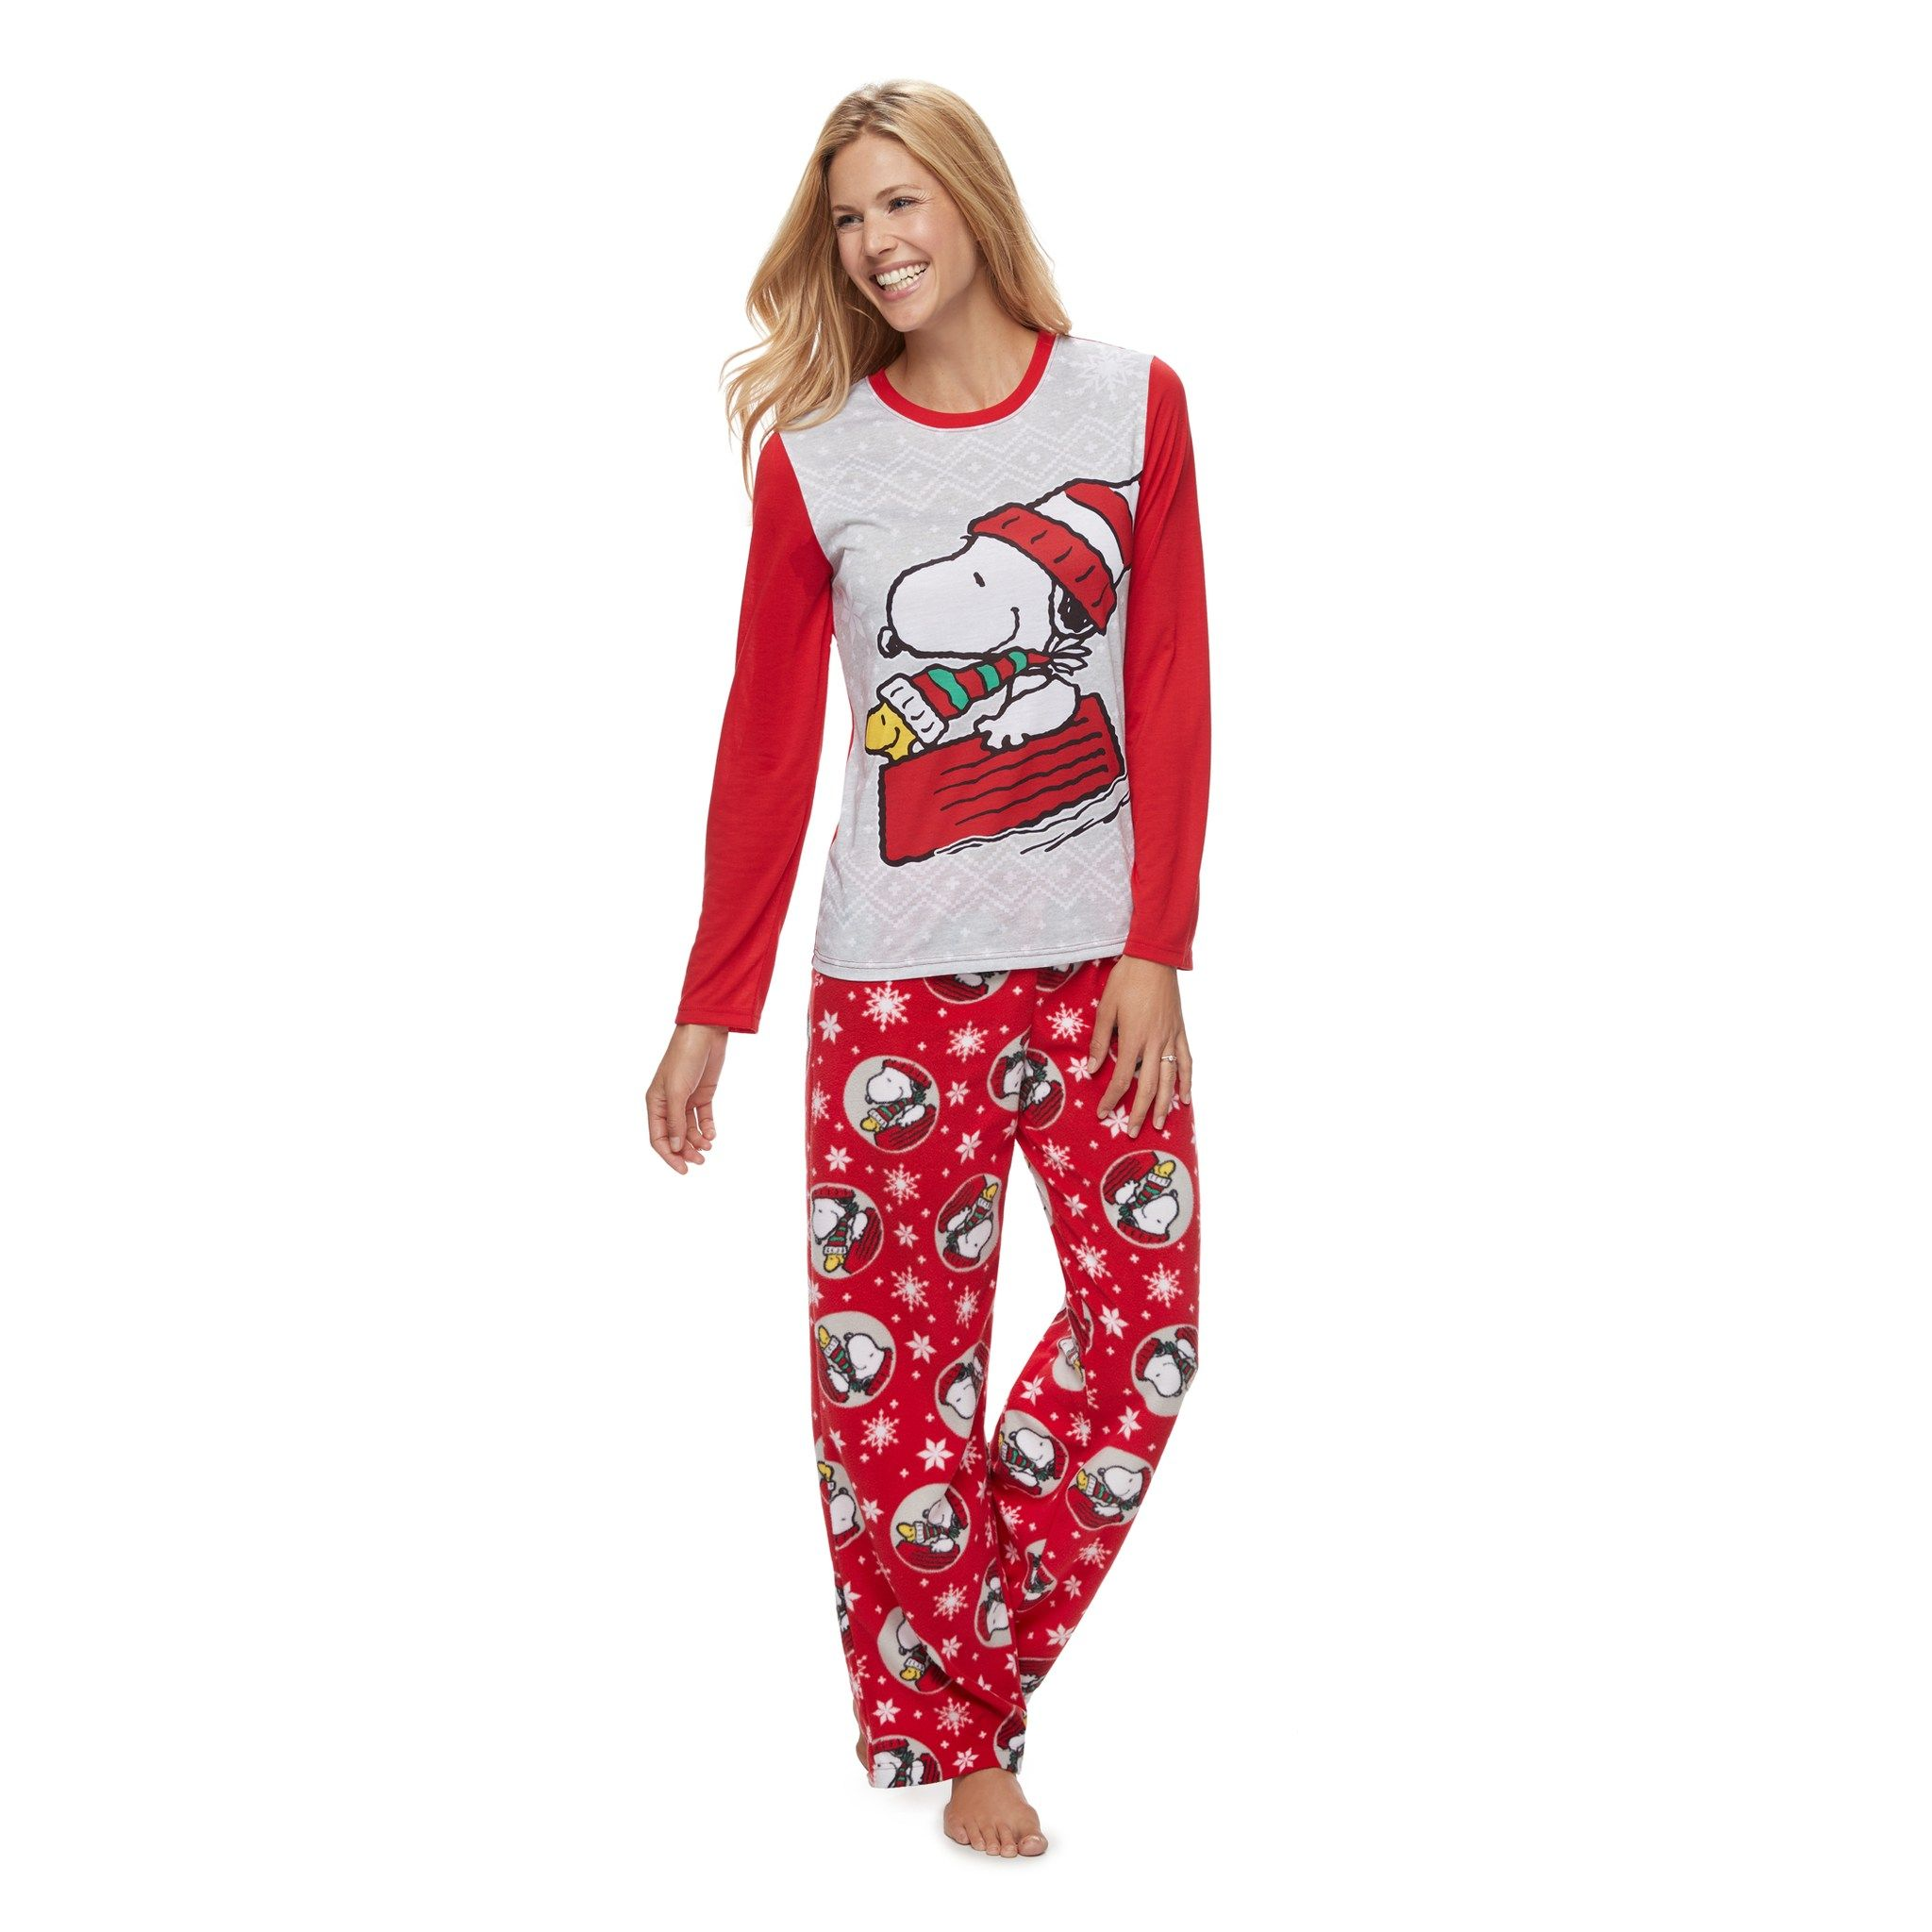 3c9c79c4b Women's Jammies For Your Families Peanuts Snoopy & Woodstock Sledding Top &  Microfleece Bottoms Pajama Set